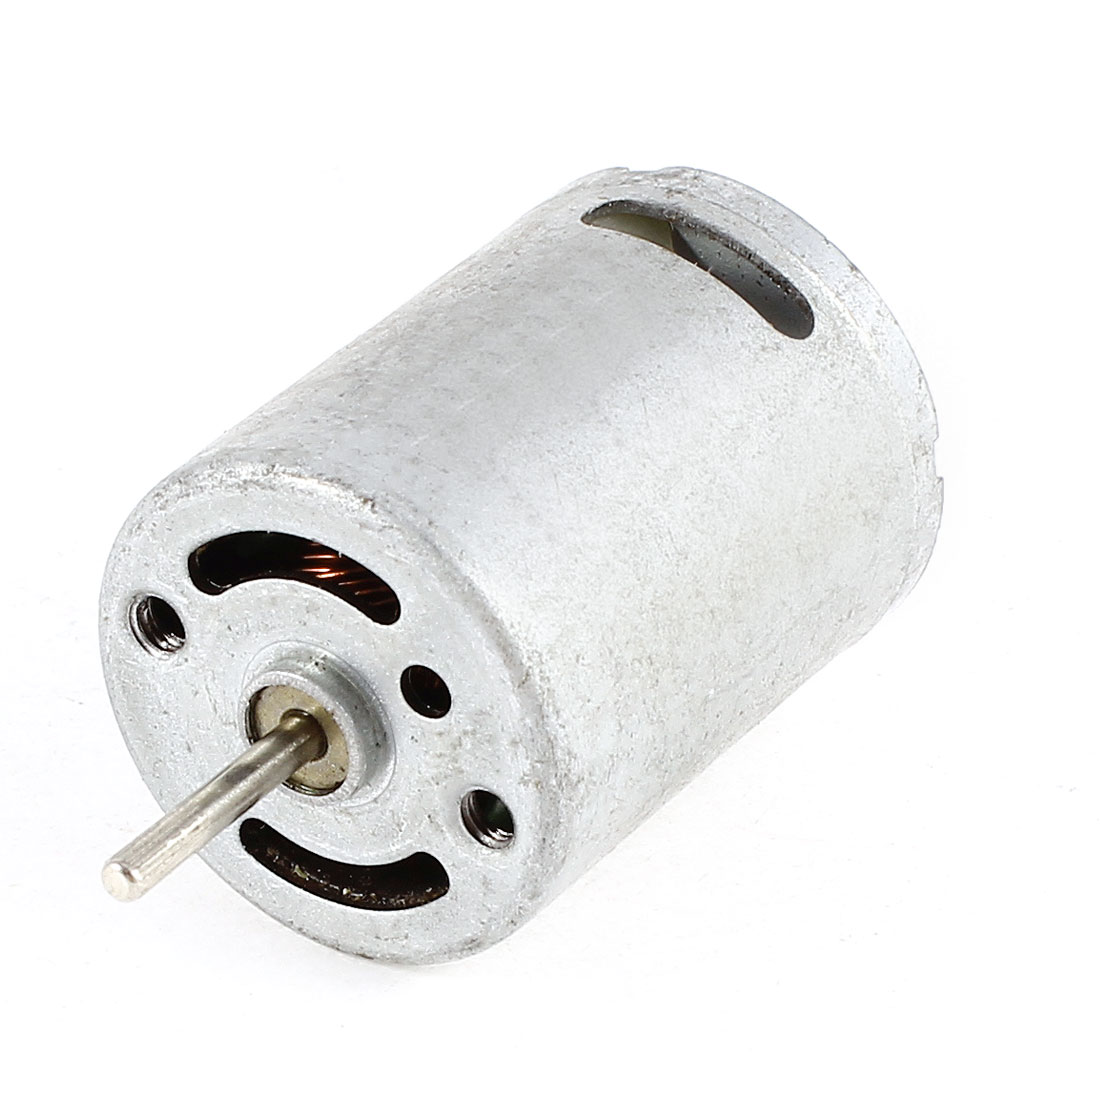 DC 3-6V 18000RPM Electric Mini Motor 30x25mm for Car Model Toys DIY